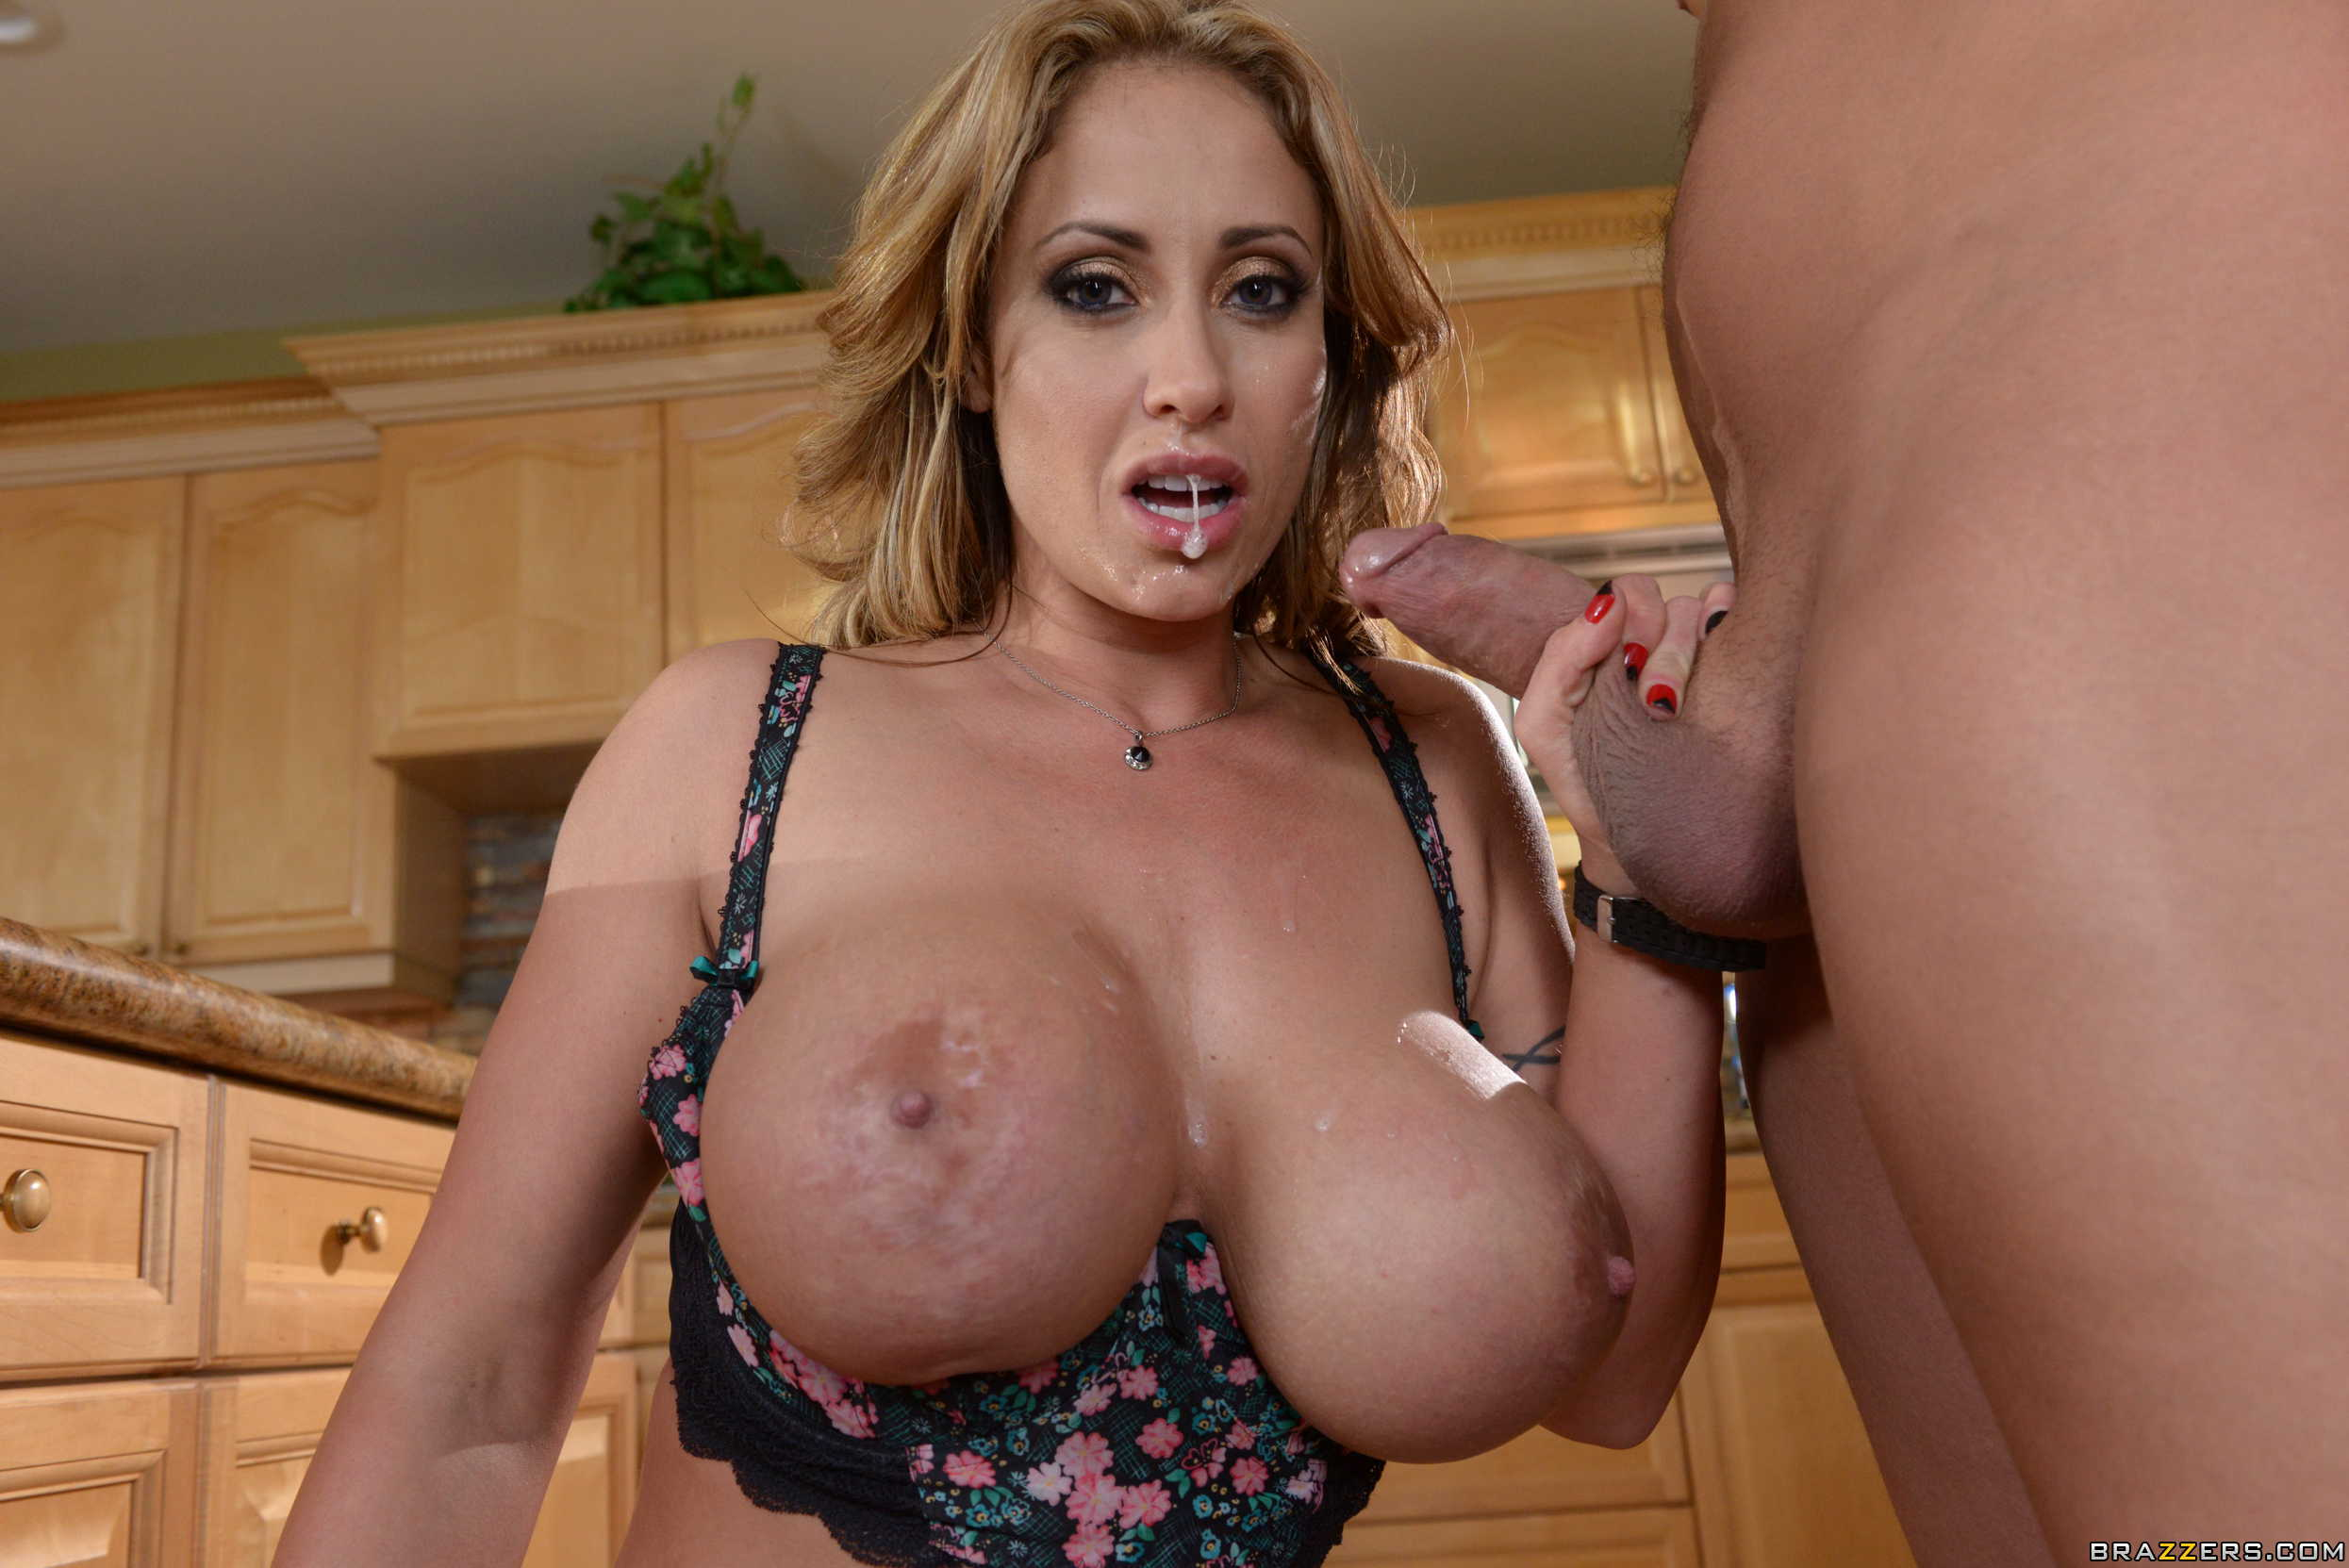 Brandi love milf escort drilled hard 9